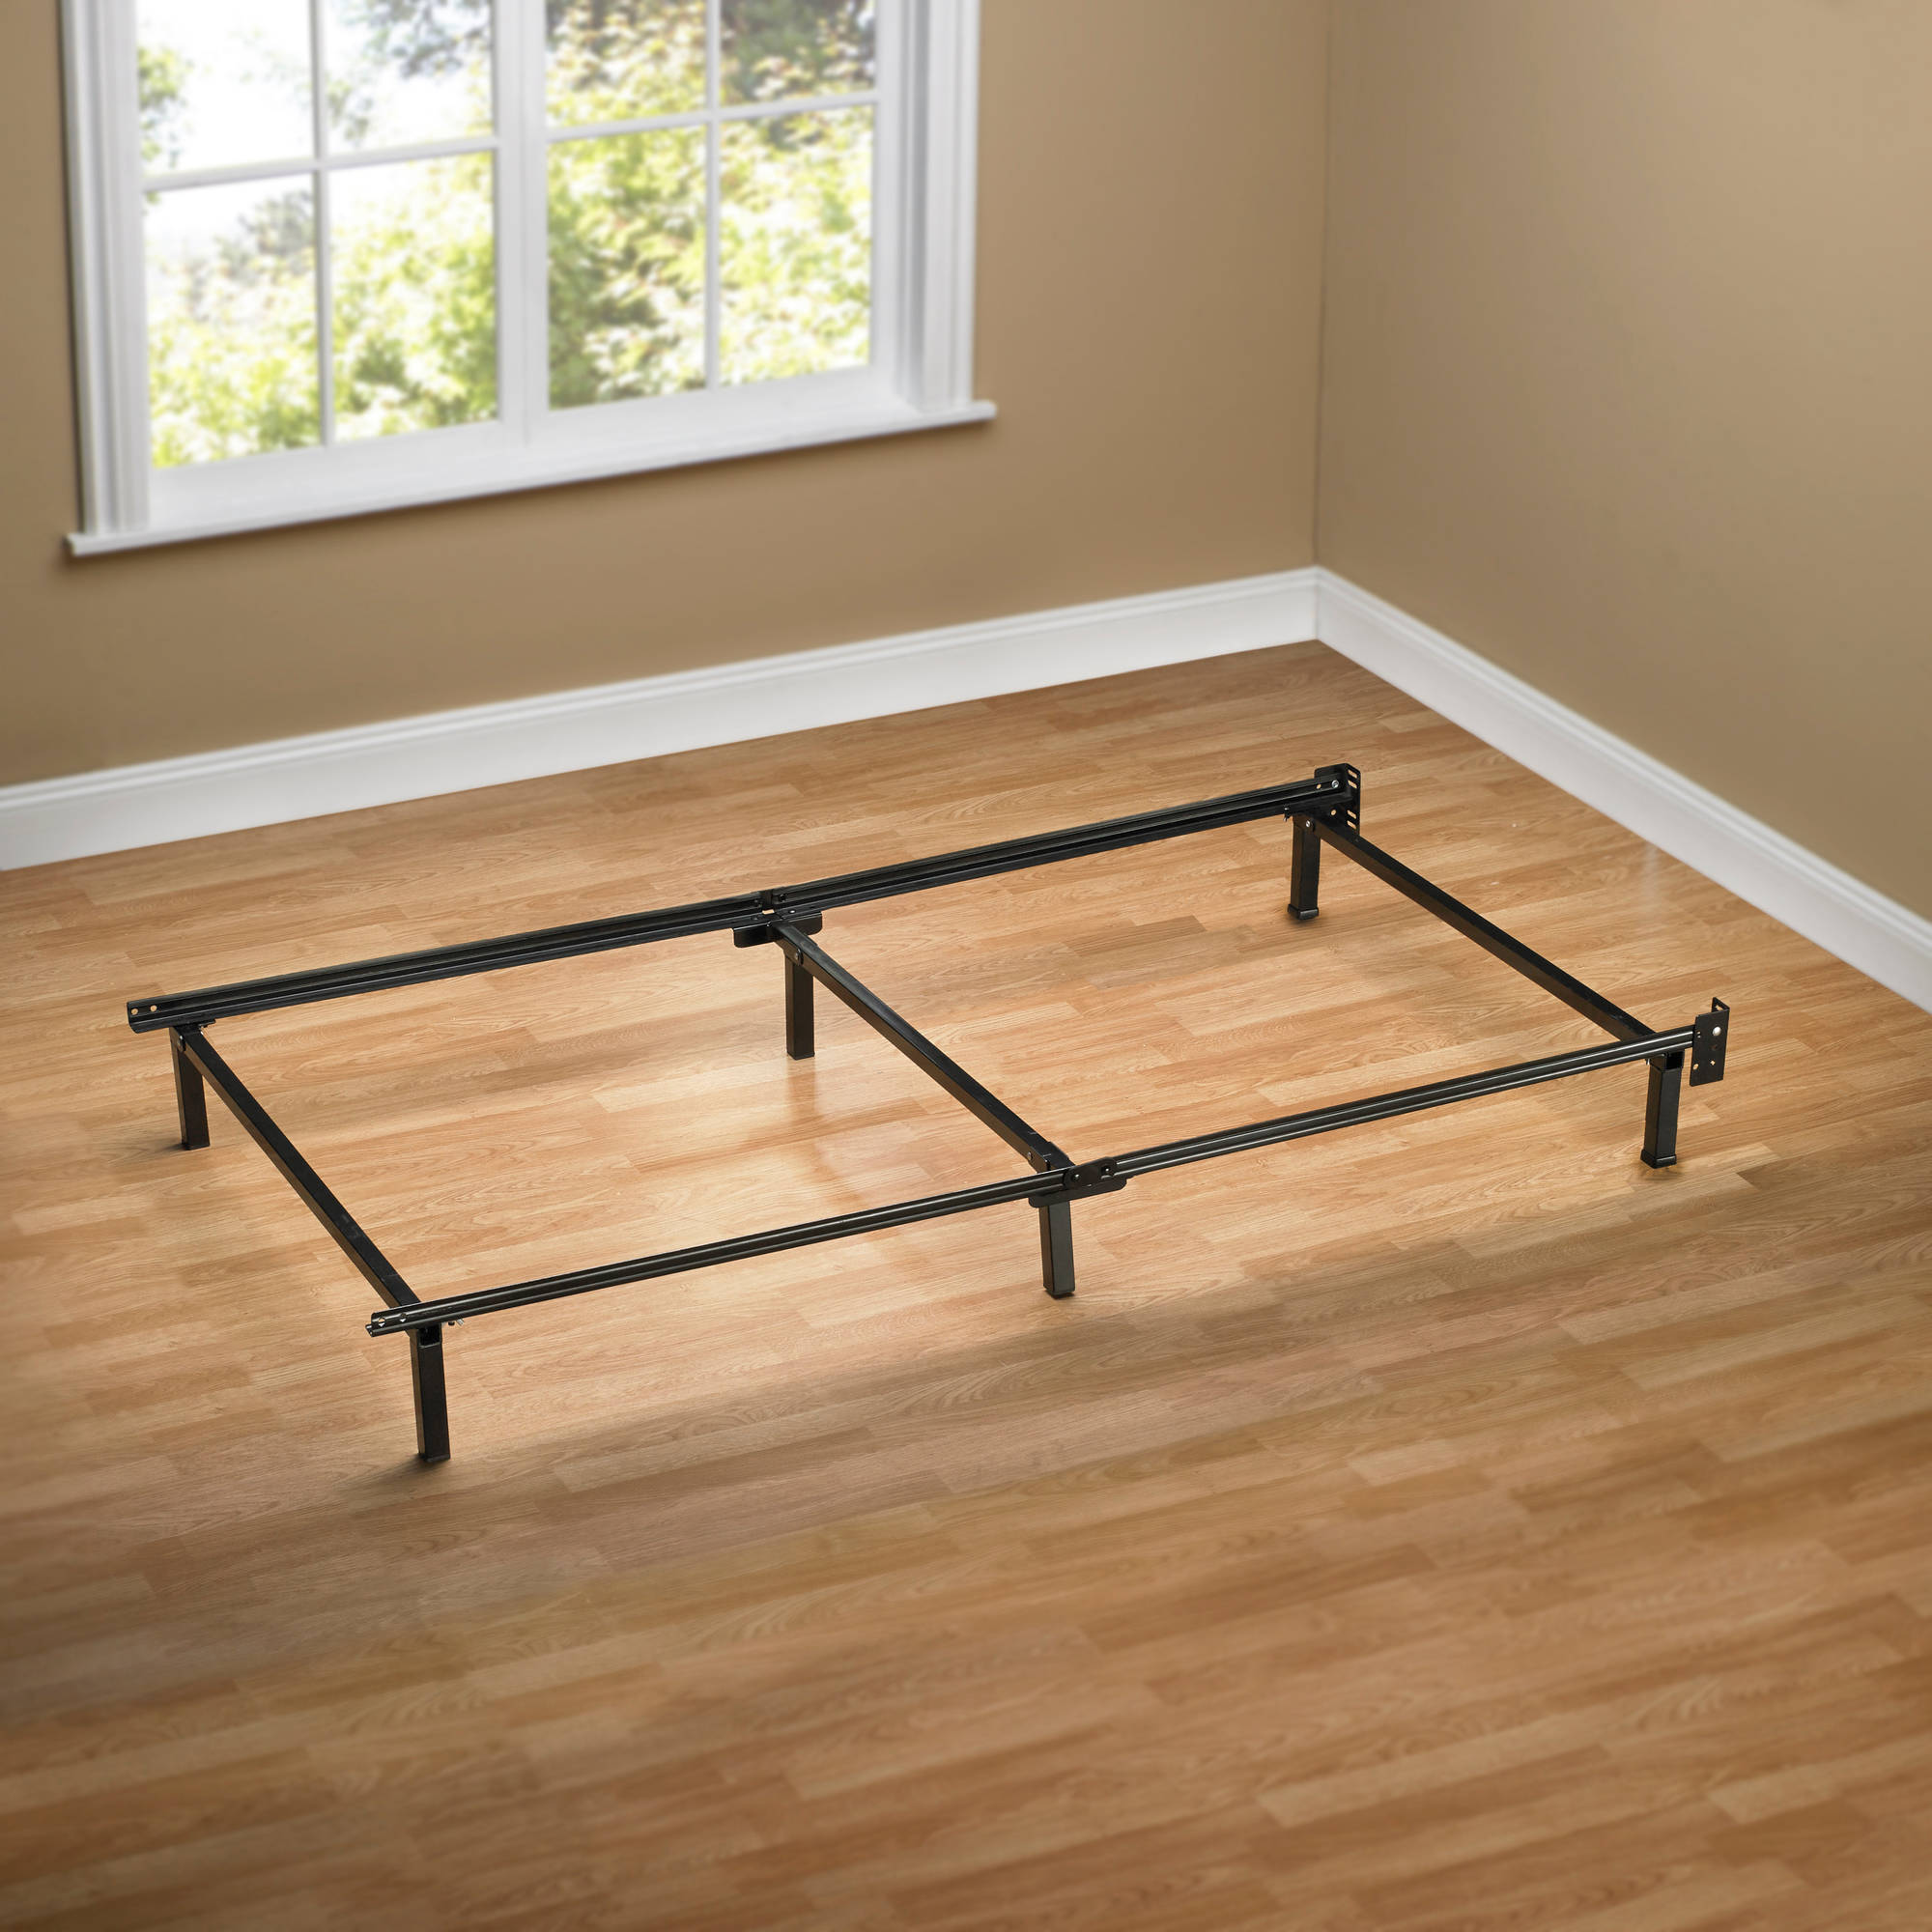 sleep revolution compack steel bed frame walmartcom - Steel Bed Frames